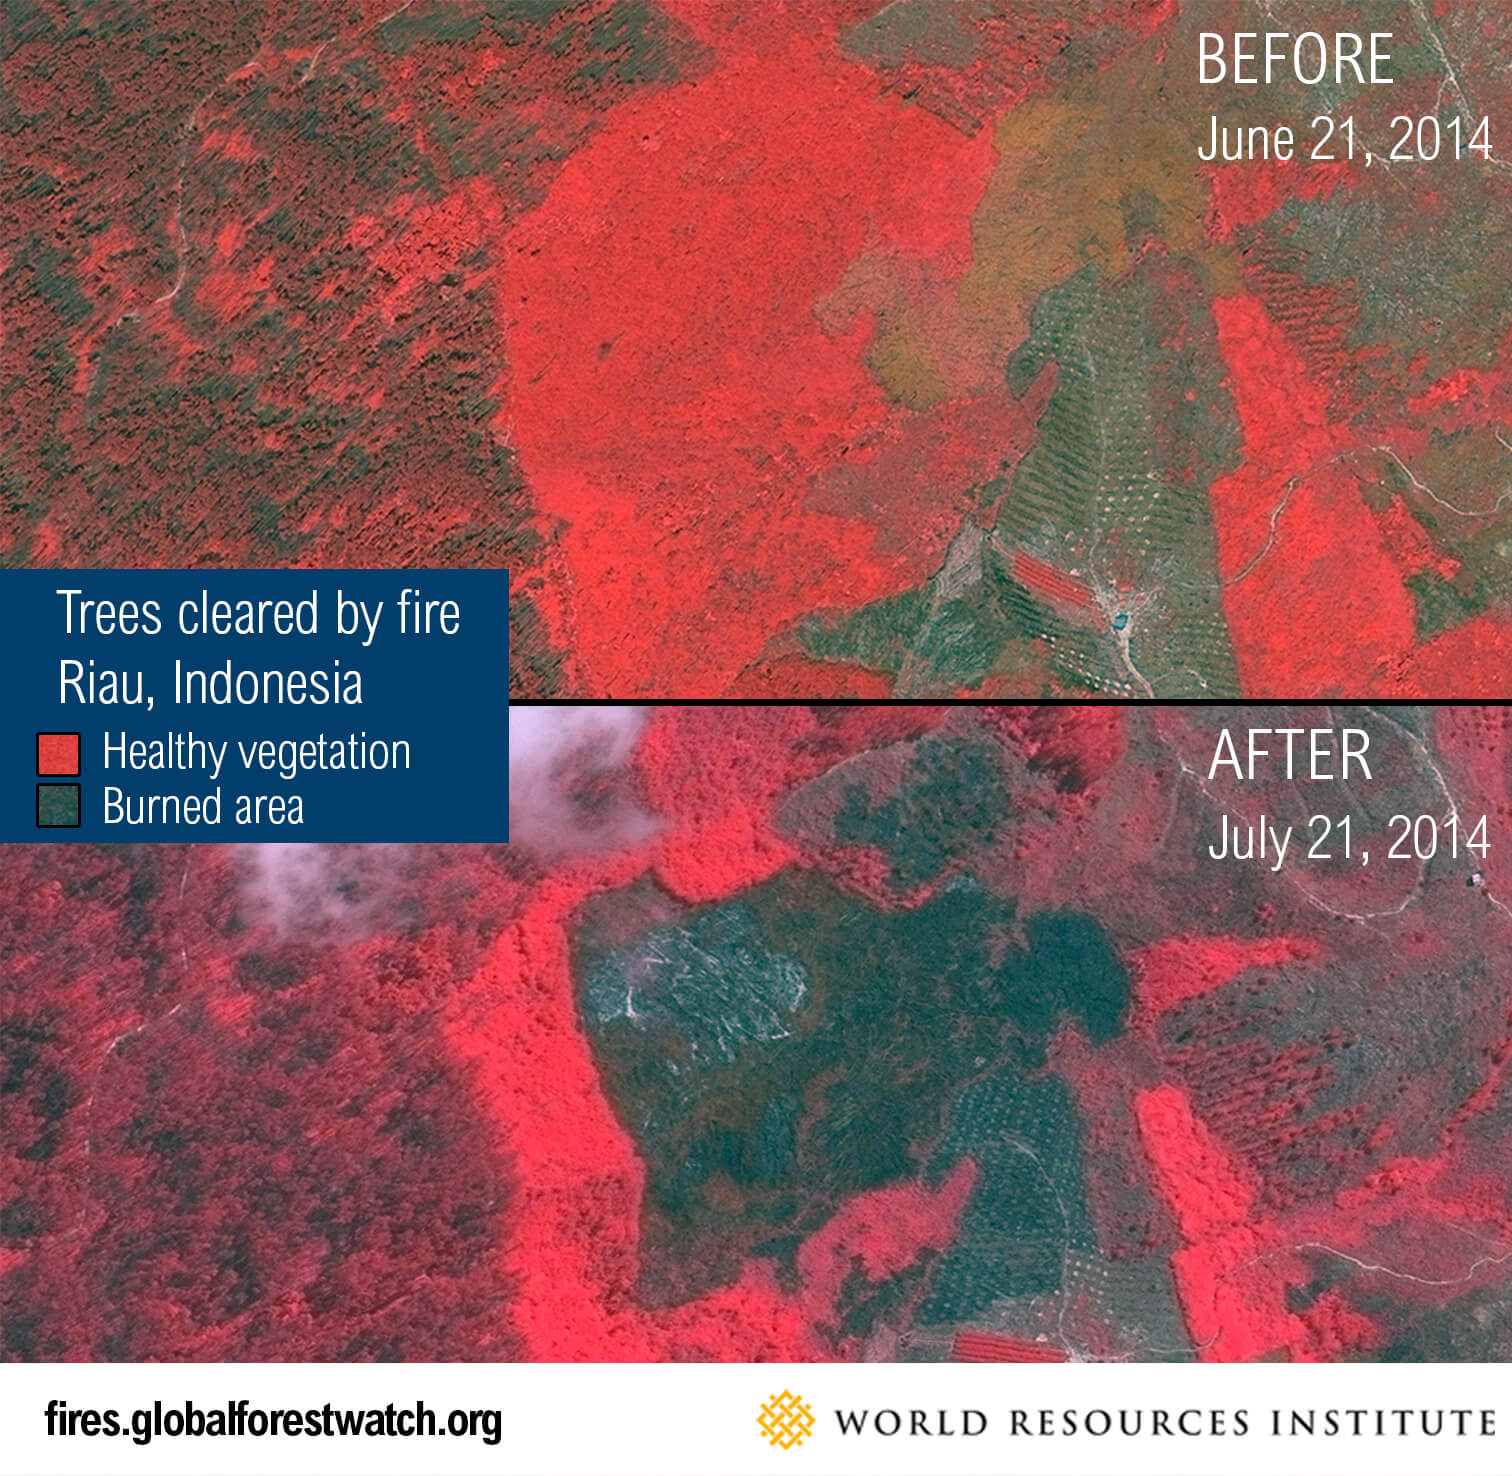 Trees cleared by fire in Riau, Indonesia